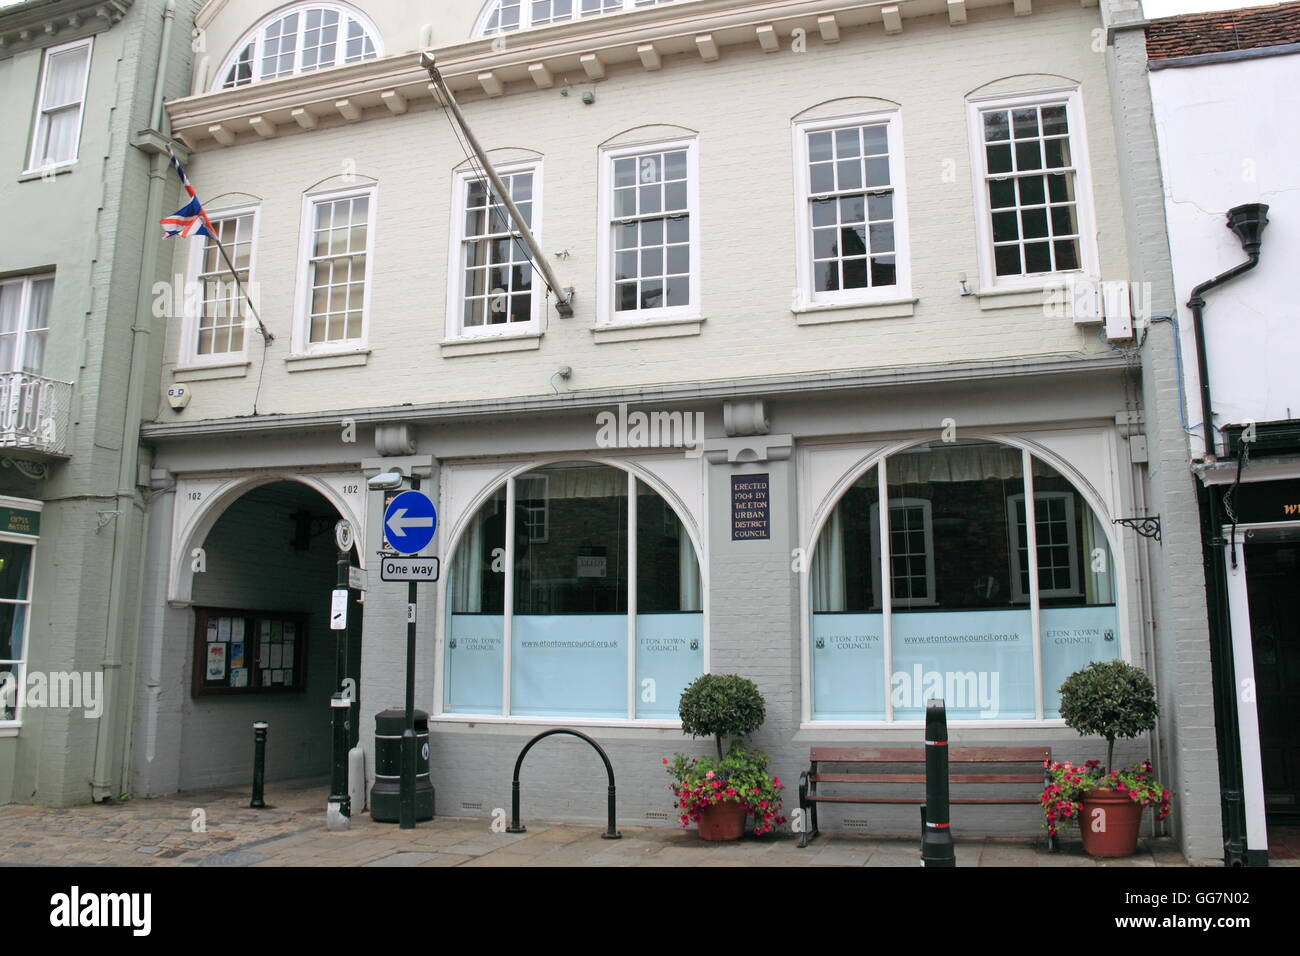 Eton Town Council, High Street, Eton, Berkshire, England, Great Britain, United Kingdom, UK, Europe - Stock Image